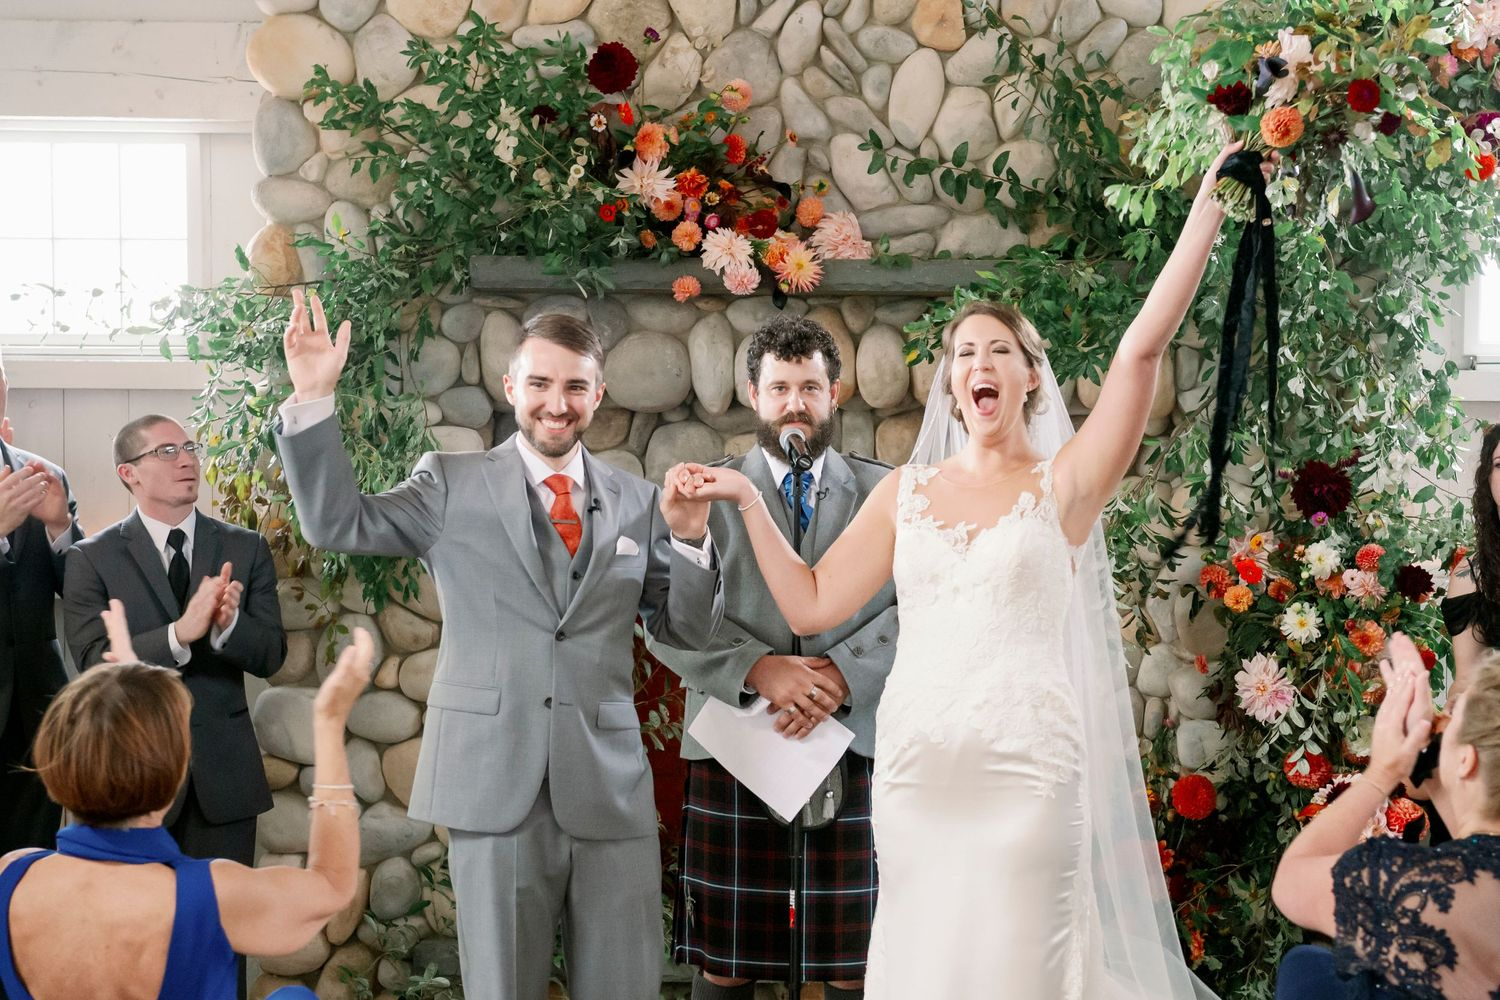 bride and groom raise hands in celebration at Bonnet Island Estate